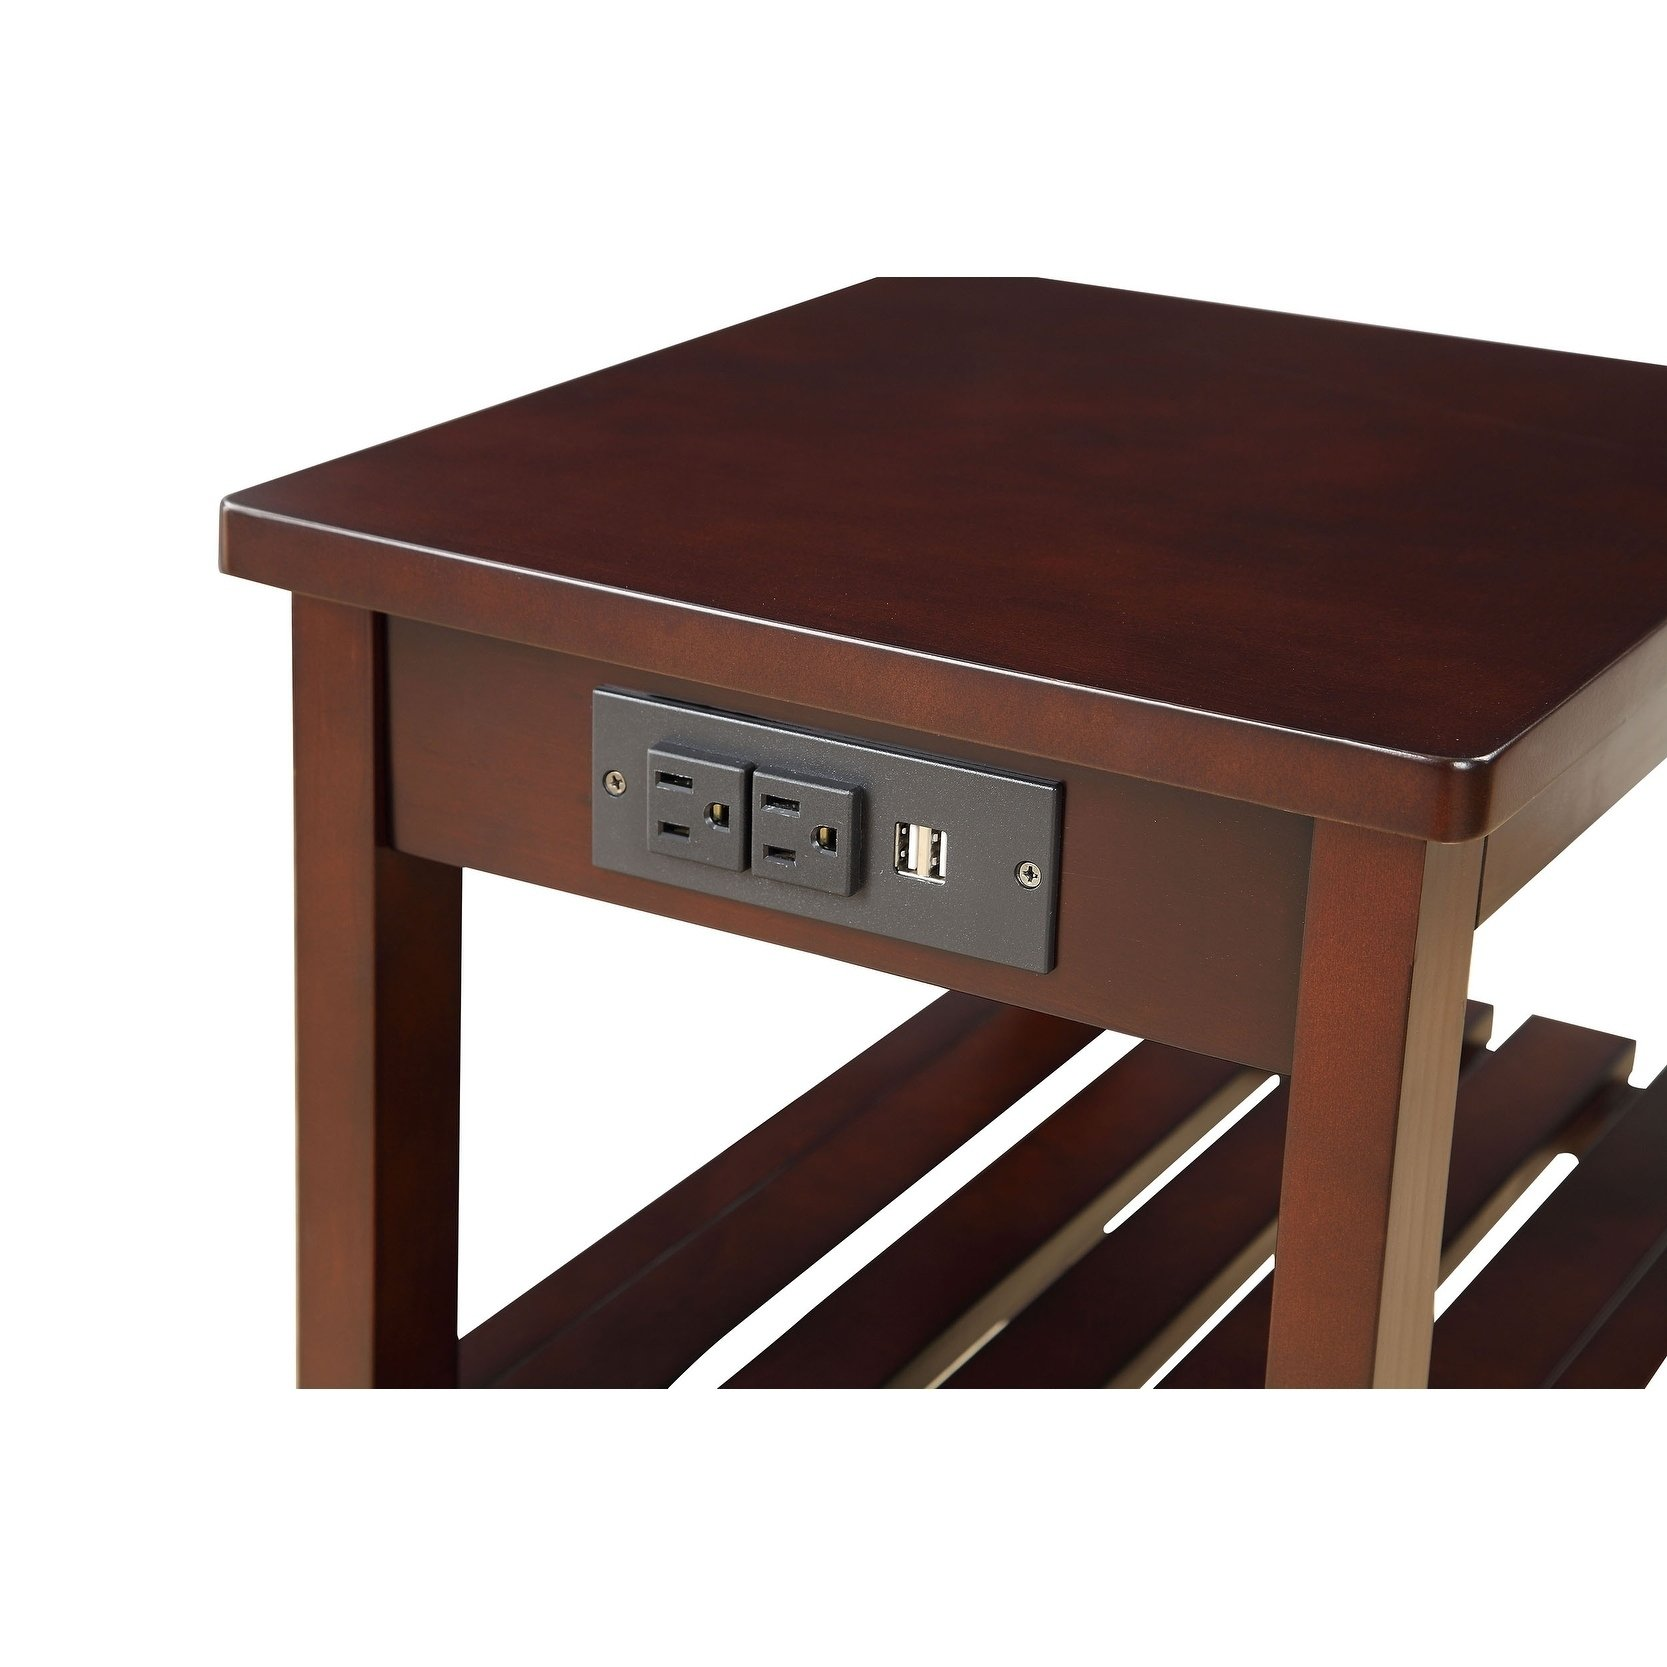 modern designs havana espresso wooden accent side table with charging station wood free shipping today matching bedside tables and chest drawers throne seat long farm extra small